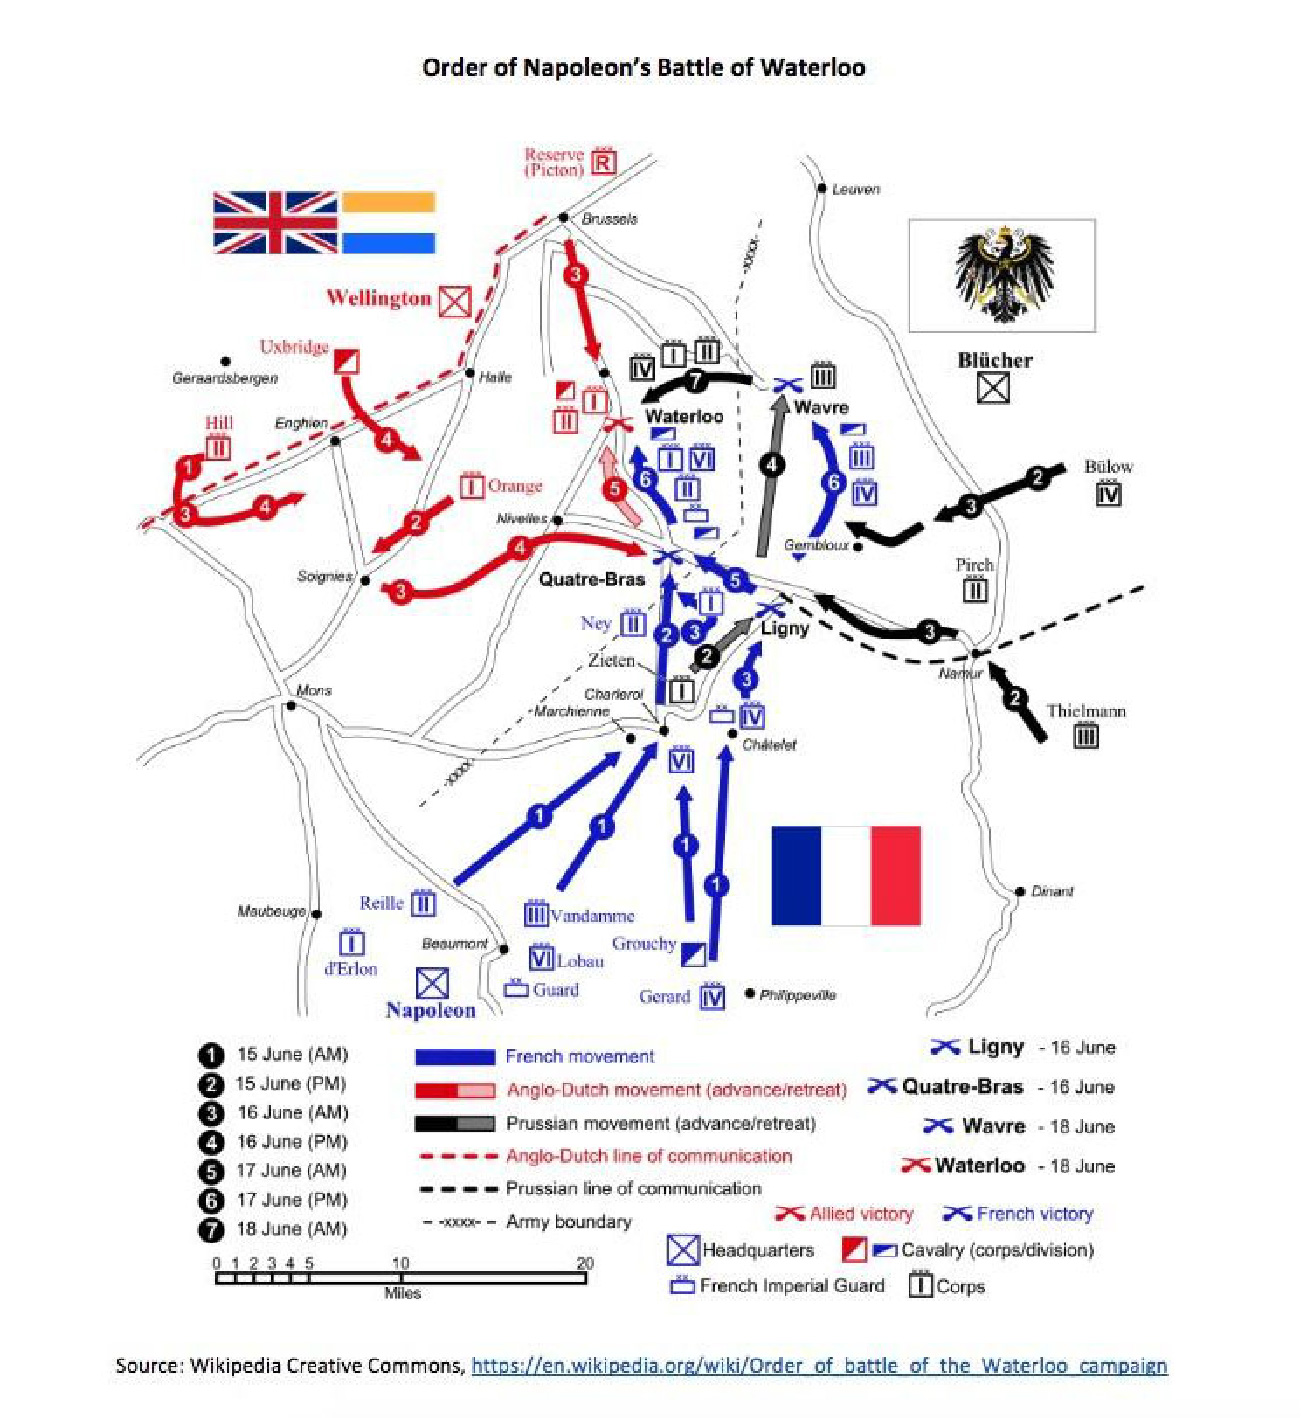 """A map shows the """"Order of Napoleon's Battle of Waterloo."""""""